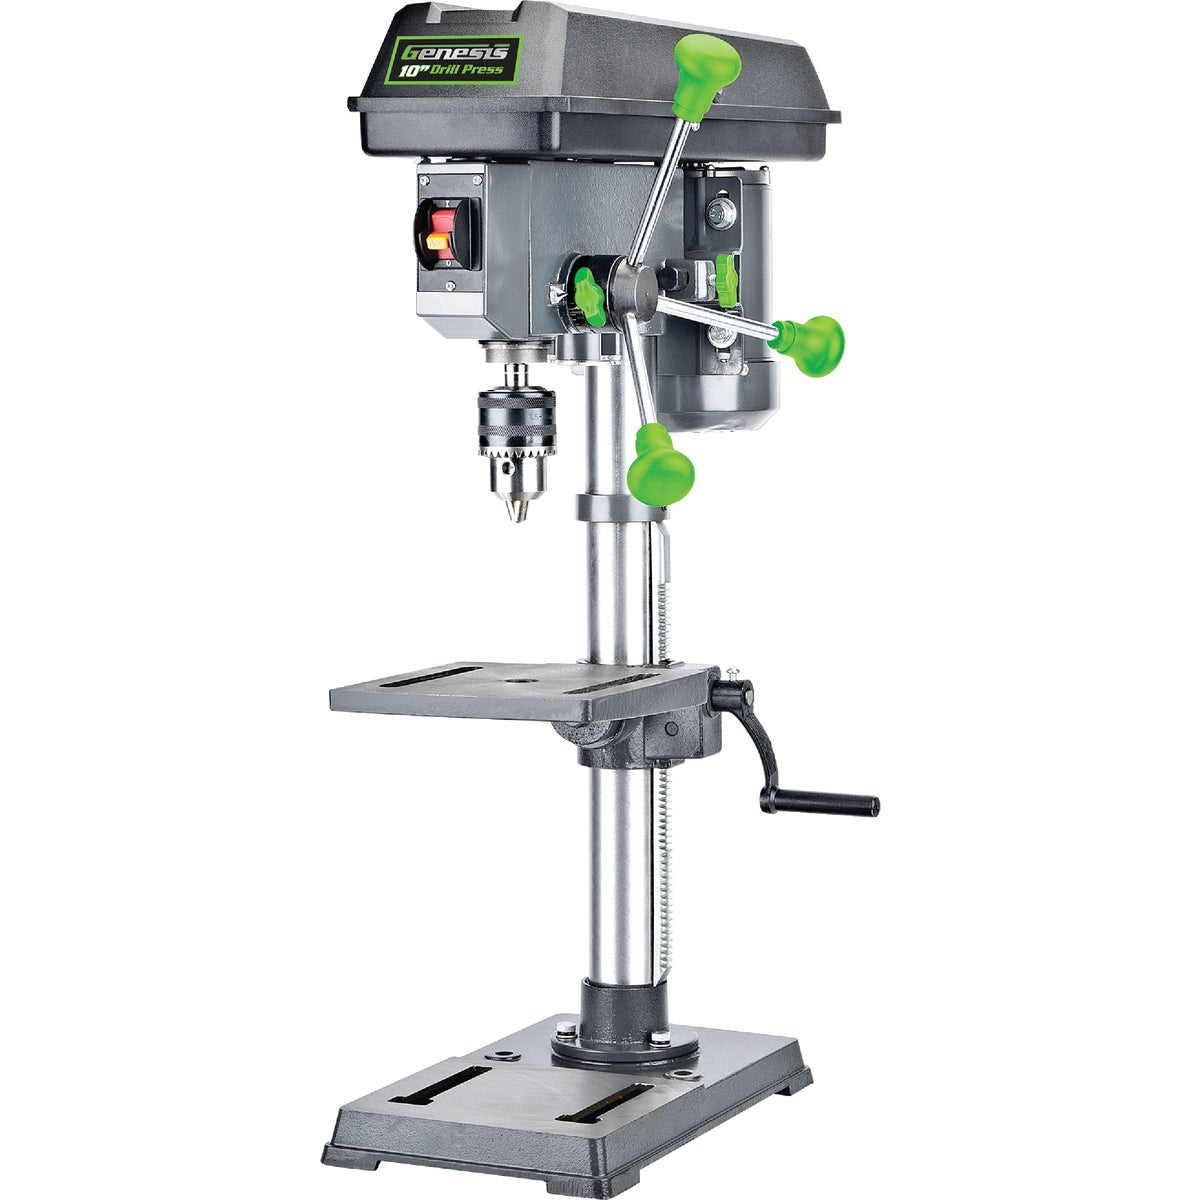 """Details about SKIL POWER TOOLS 3320-01 10"""" BENCH TOP DRILL PRESS"""